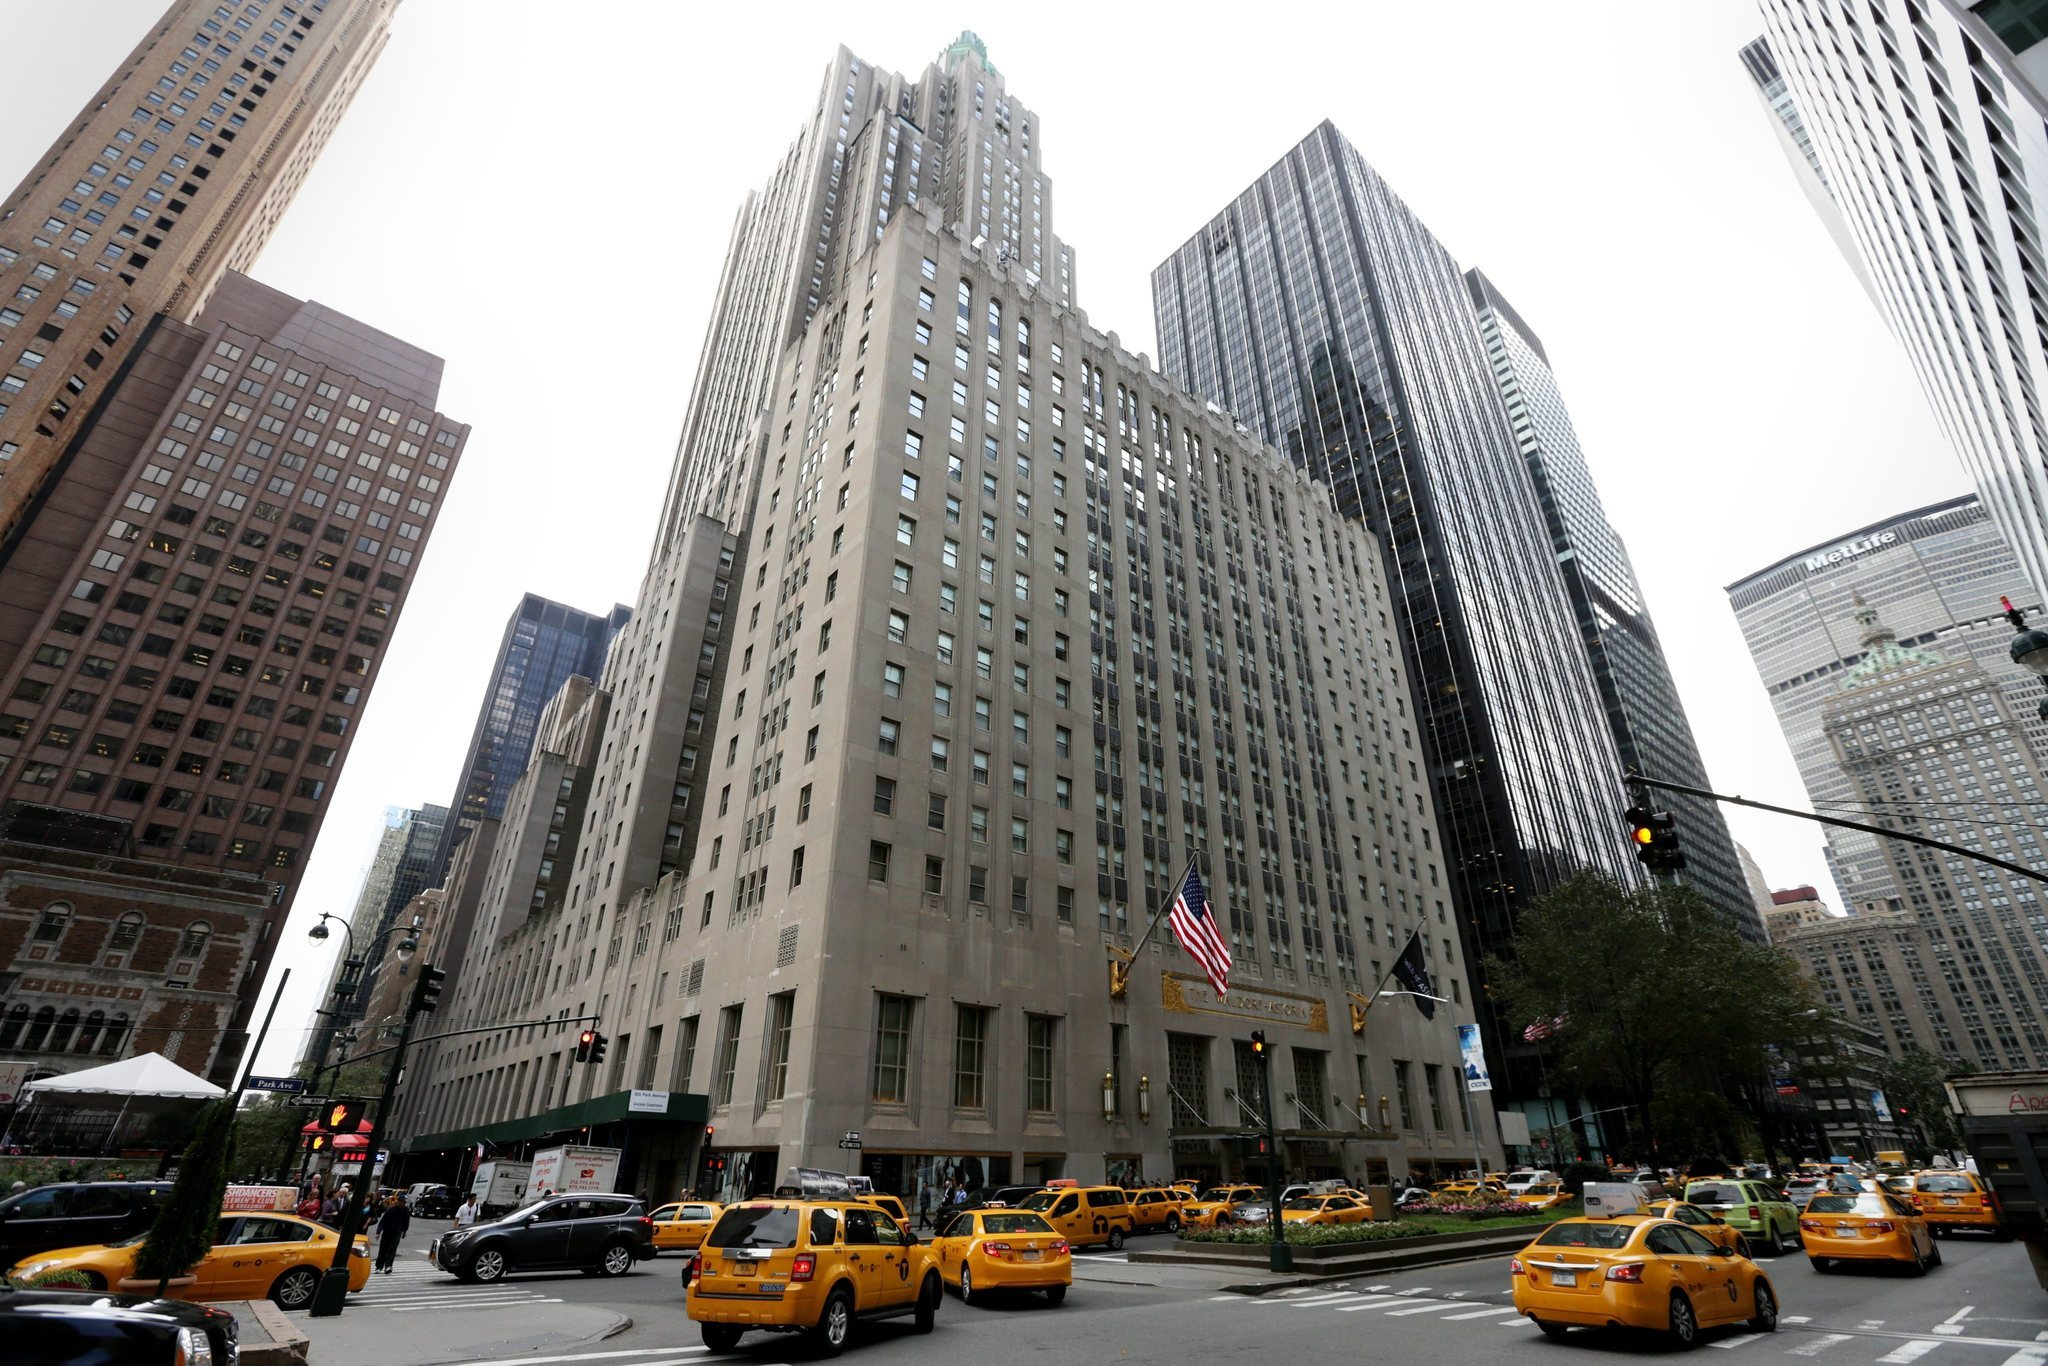 Waldorf astoria sold to chinese longtime host to chinese for Hotel new astoria